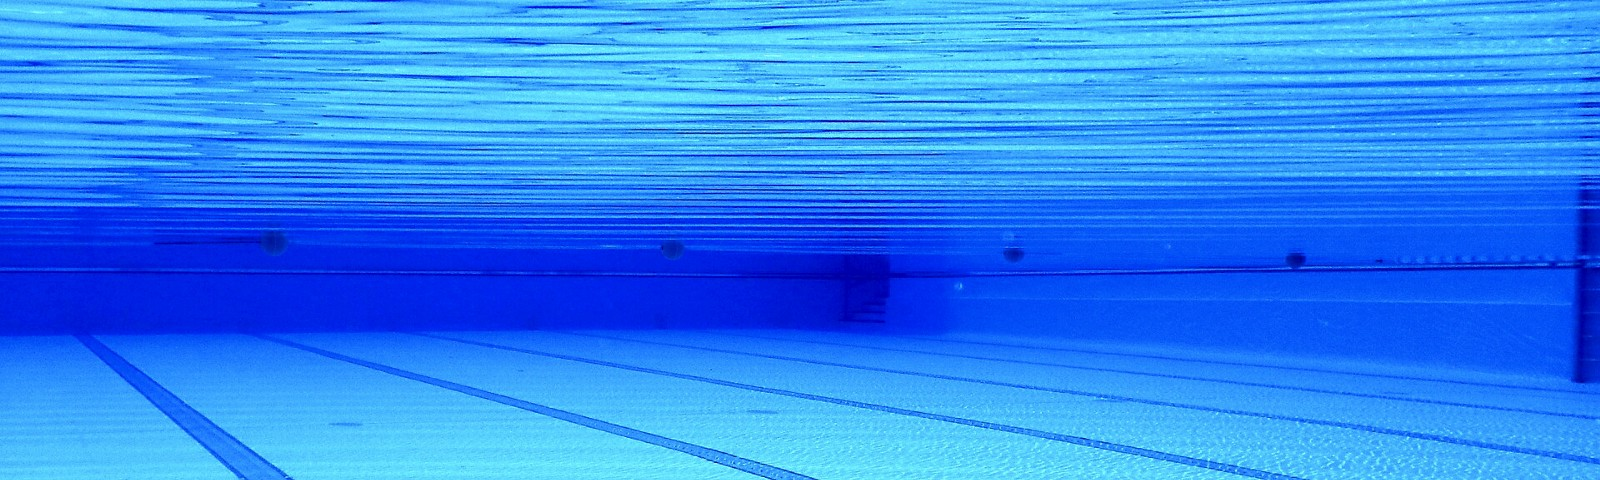 Underwater photo of a blue pool with lane markings on the bottom.